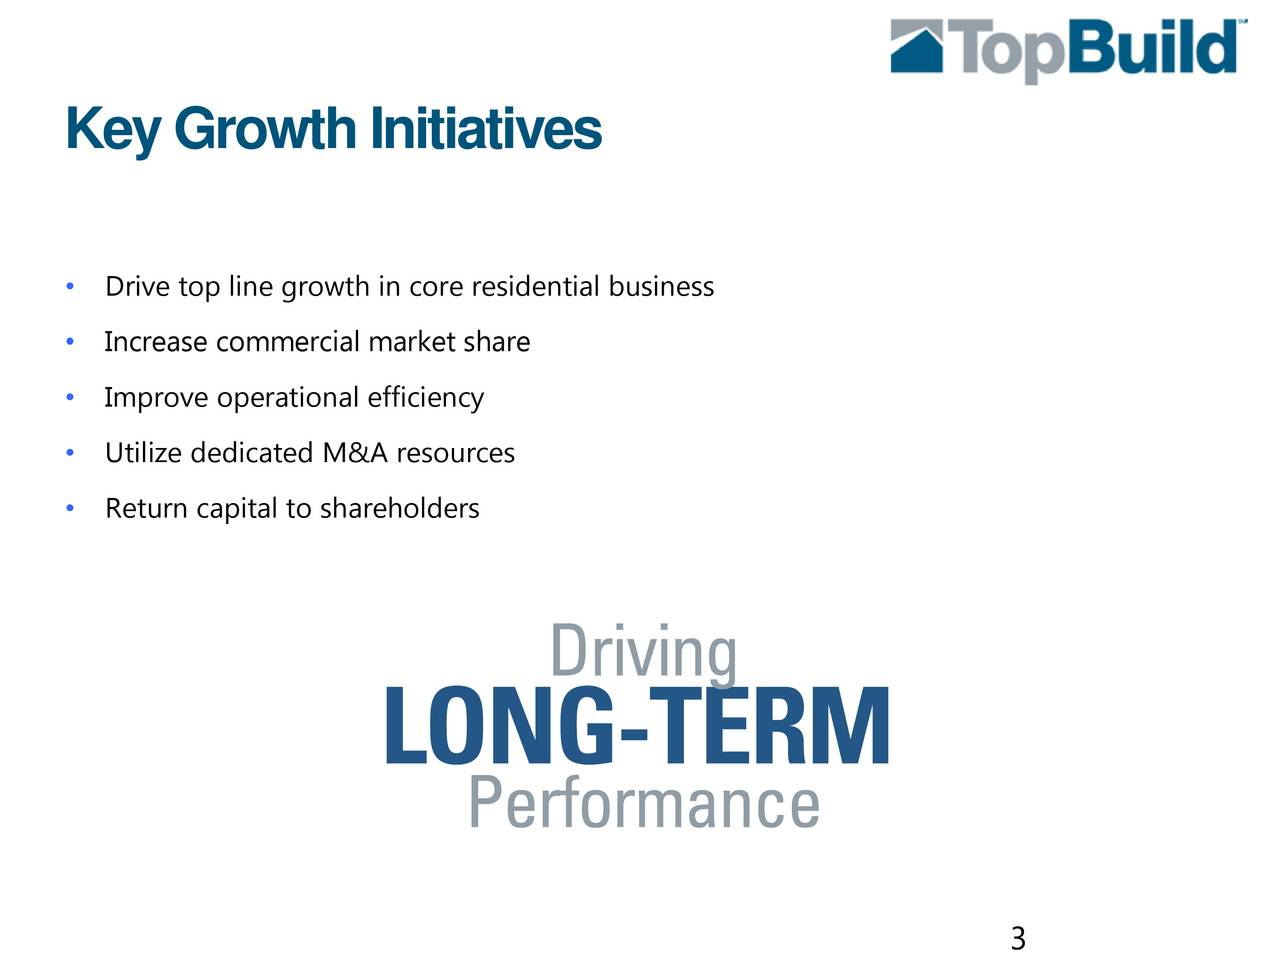 Drive top line growth in core residential business Increase commercial market share Improve operational efficiency Utilize dedicated M&A resources Return capital to shareholders